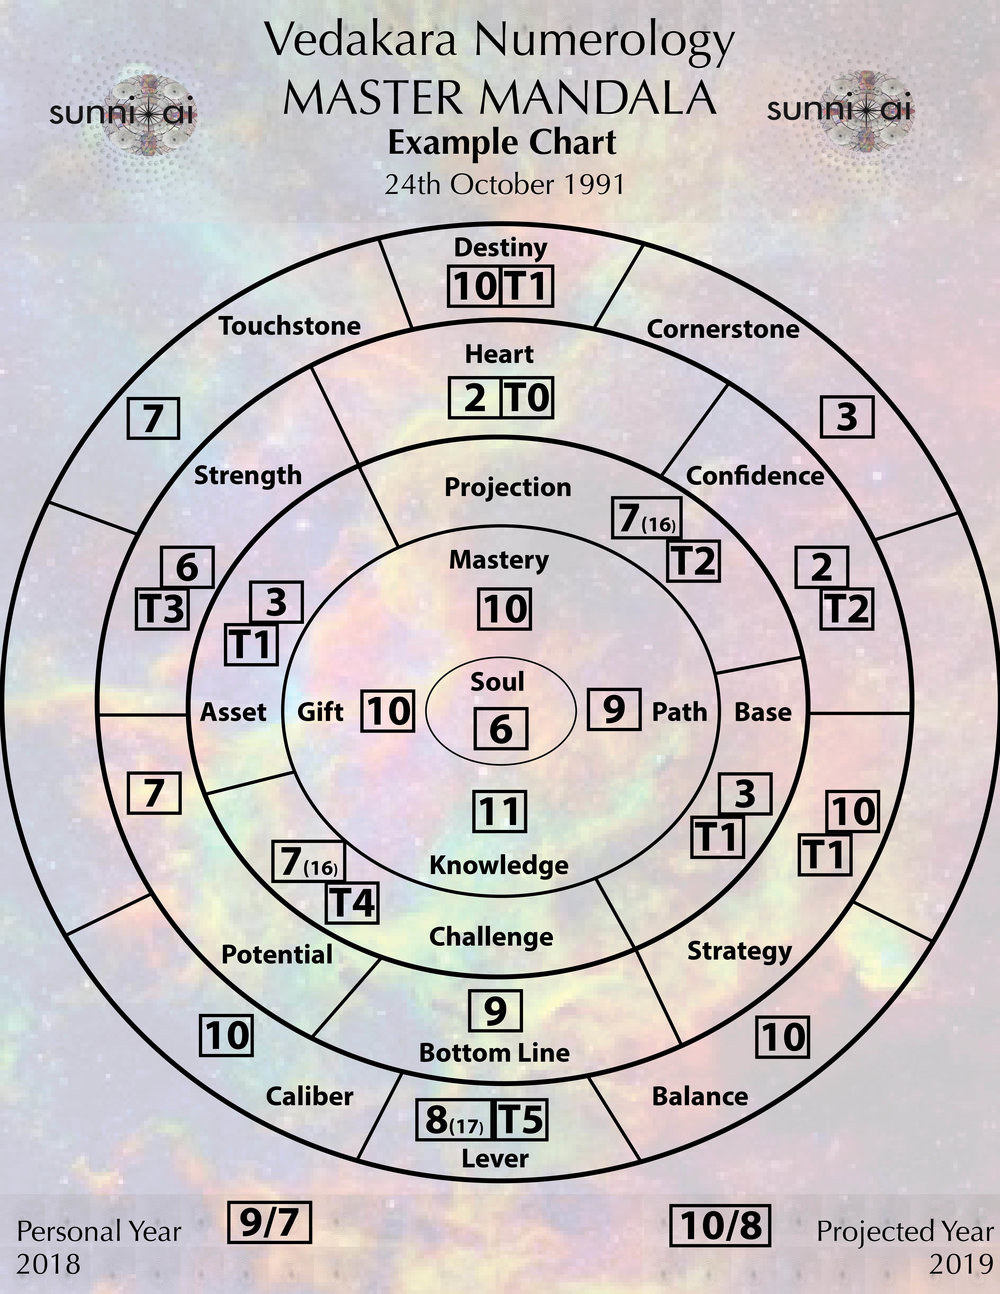 Personal readings - 22 Calculation Master MandalaIn the Master Mandala there are 22 calculations to create a chart of your personal numbers.It is a life map of your innermost self. These readings are deep, potent and powerful. The reading is a reminder of who you really are, what you came to do, and how to go about getting it done. Your chart tells a story that is unique to you and illuminates and confirms what your soul already knows. With this knowledge you will gain clarity and confidence to take the next step in your life evolution.